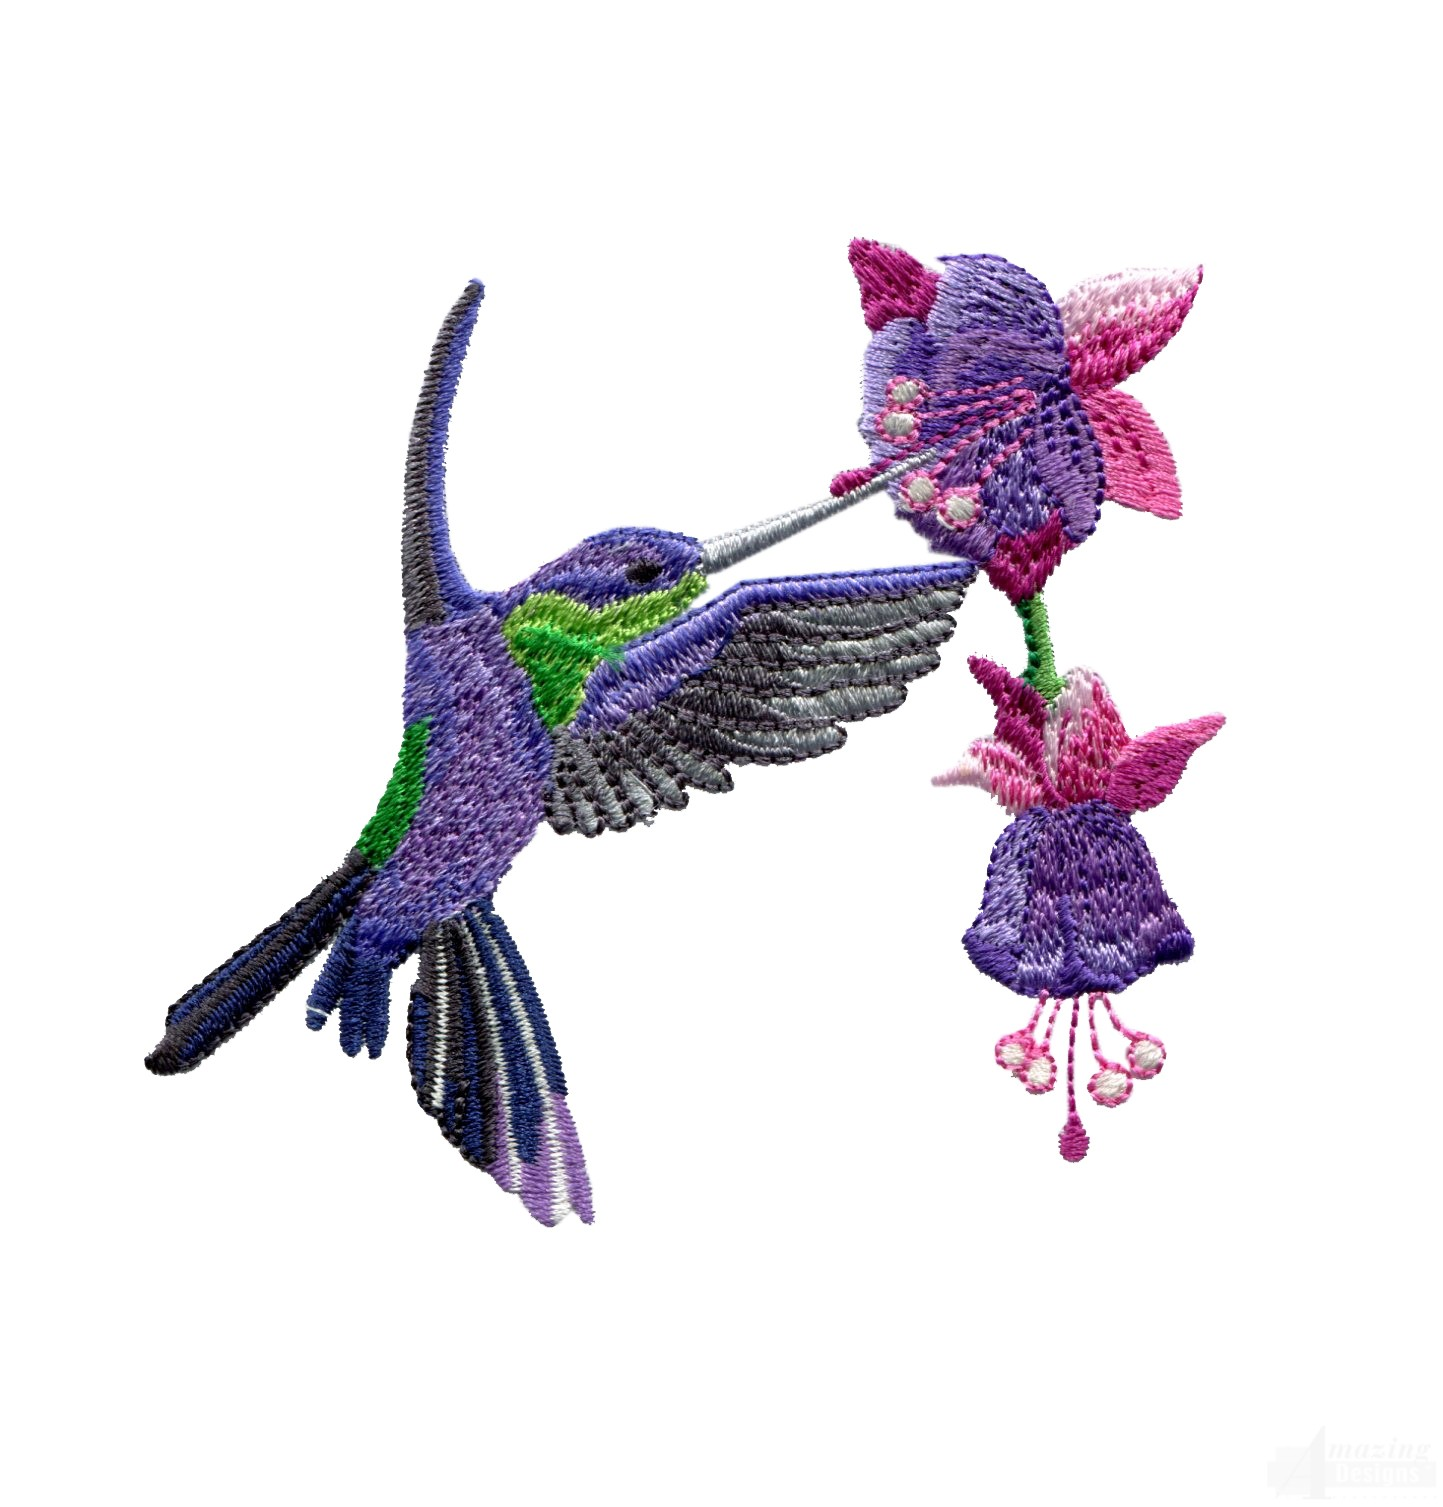 Swnhe144 Hummingbird Enchantment Embroidery Design